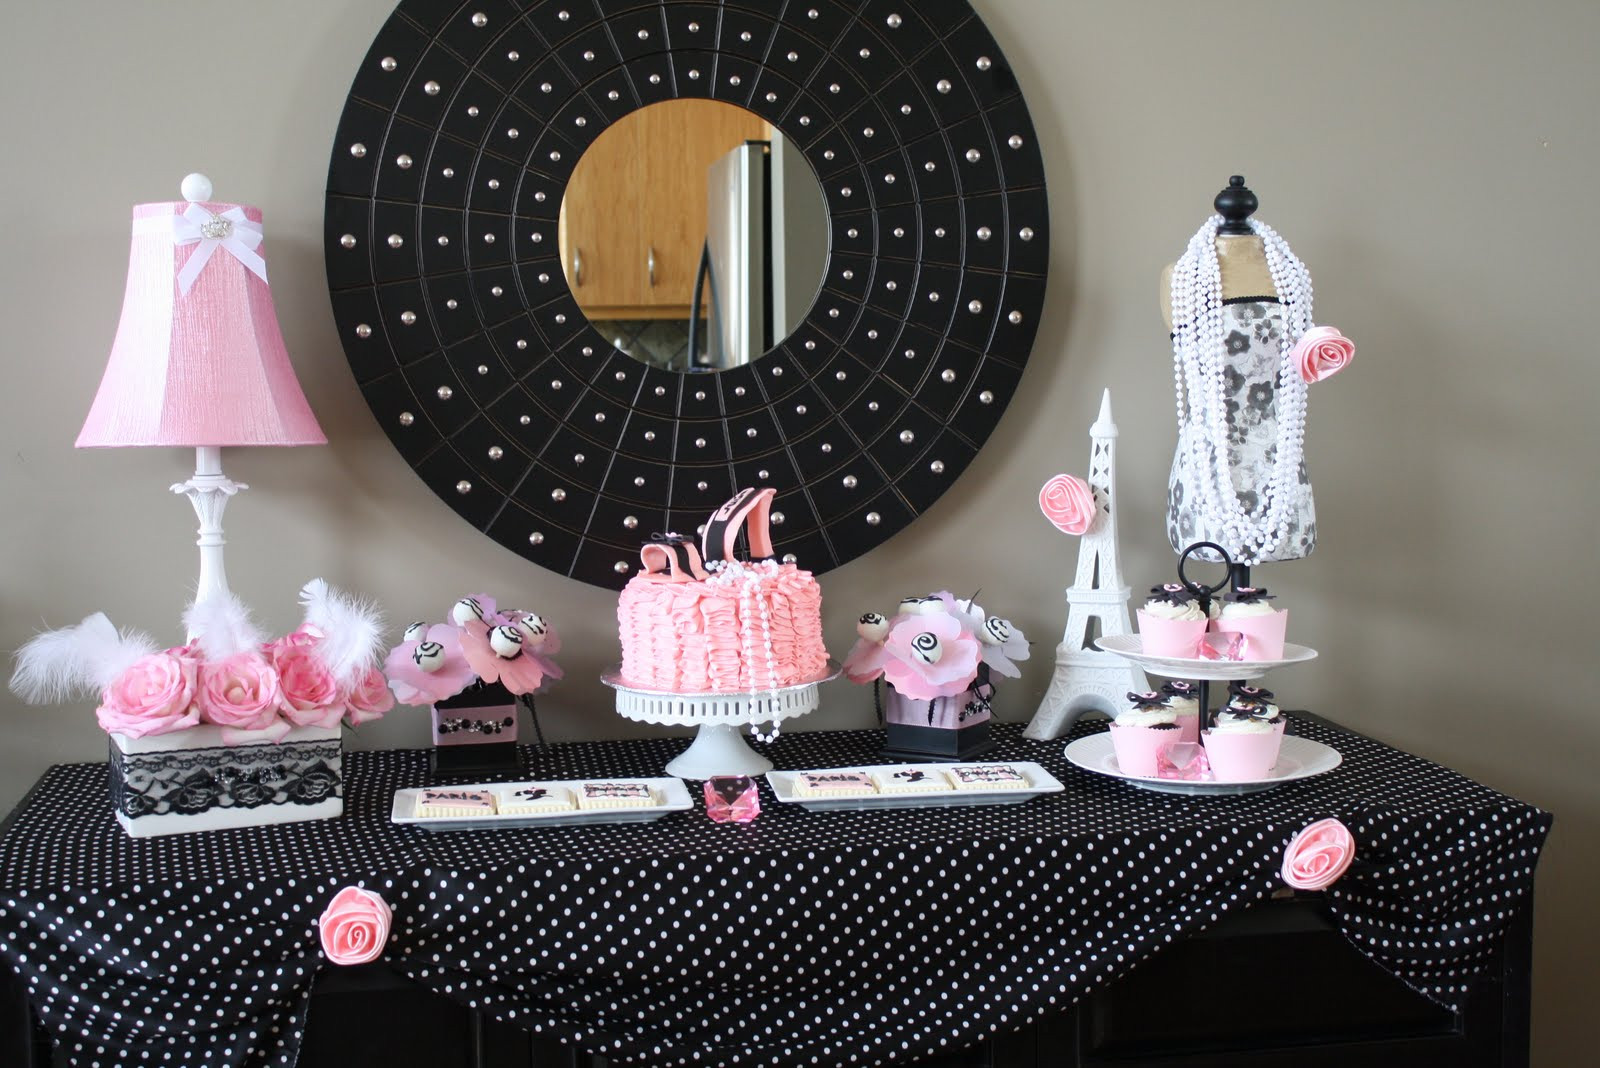 Best ideas about Paris Birthday Party . Save or Pin Canadian Hostess Blog Parisian Couture Themed Party Now.